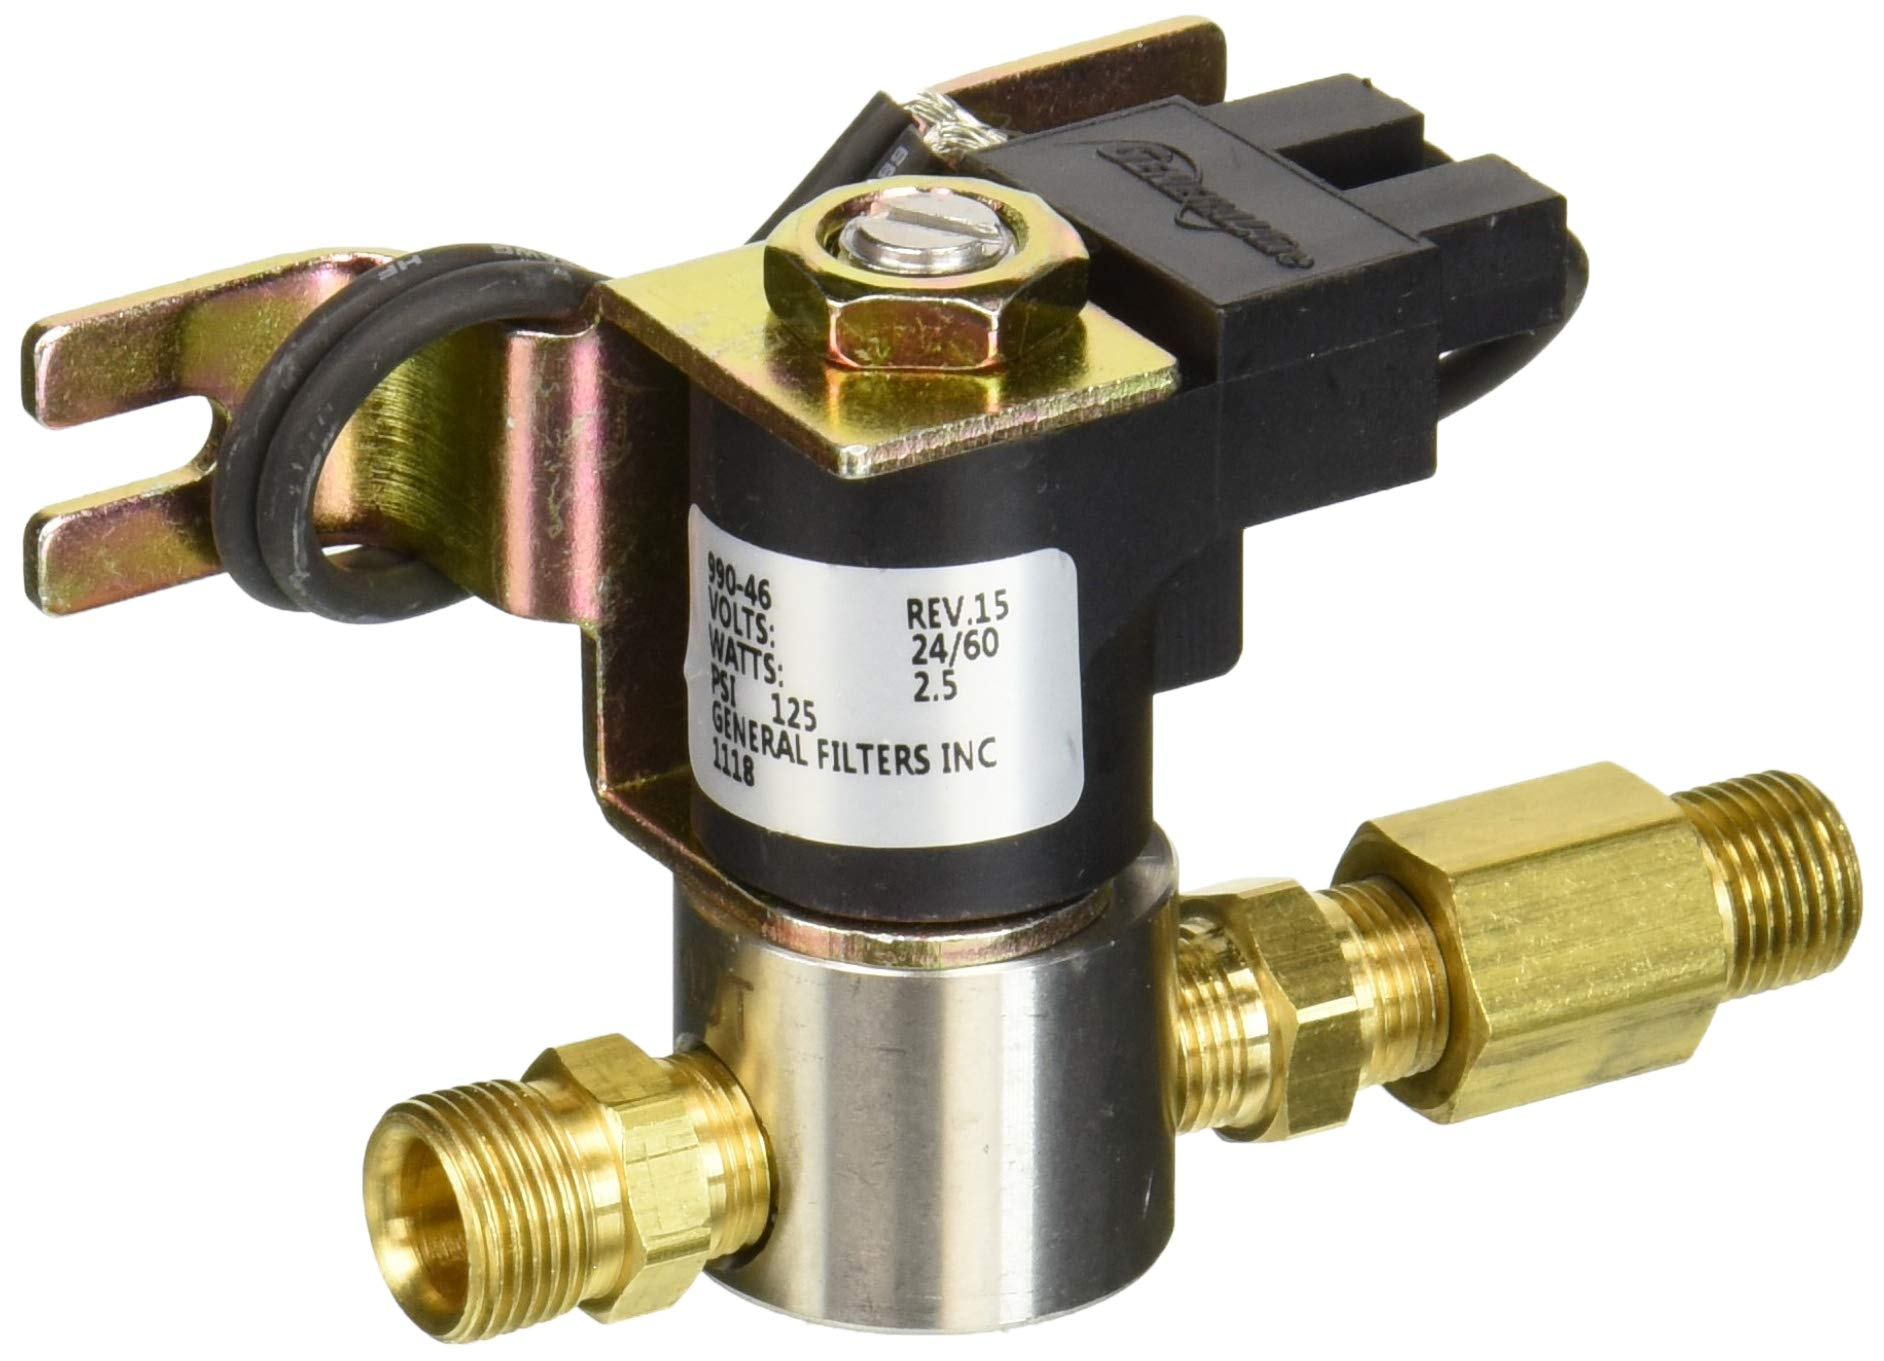 General Filters, Inc. 990-53 Water Inlet Valve by General Filters, Inc.